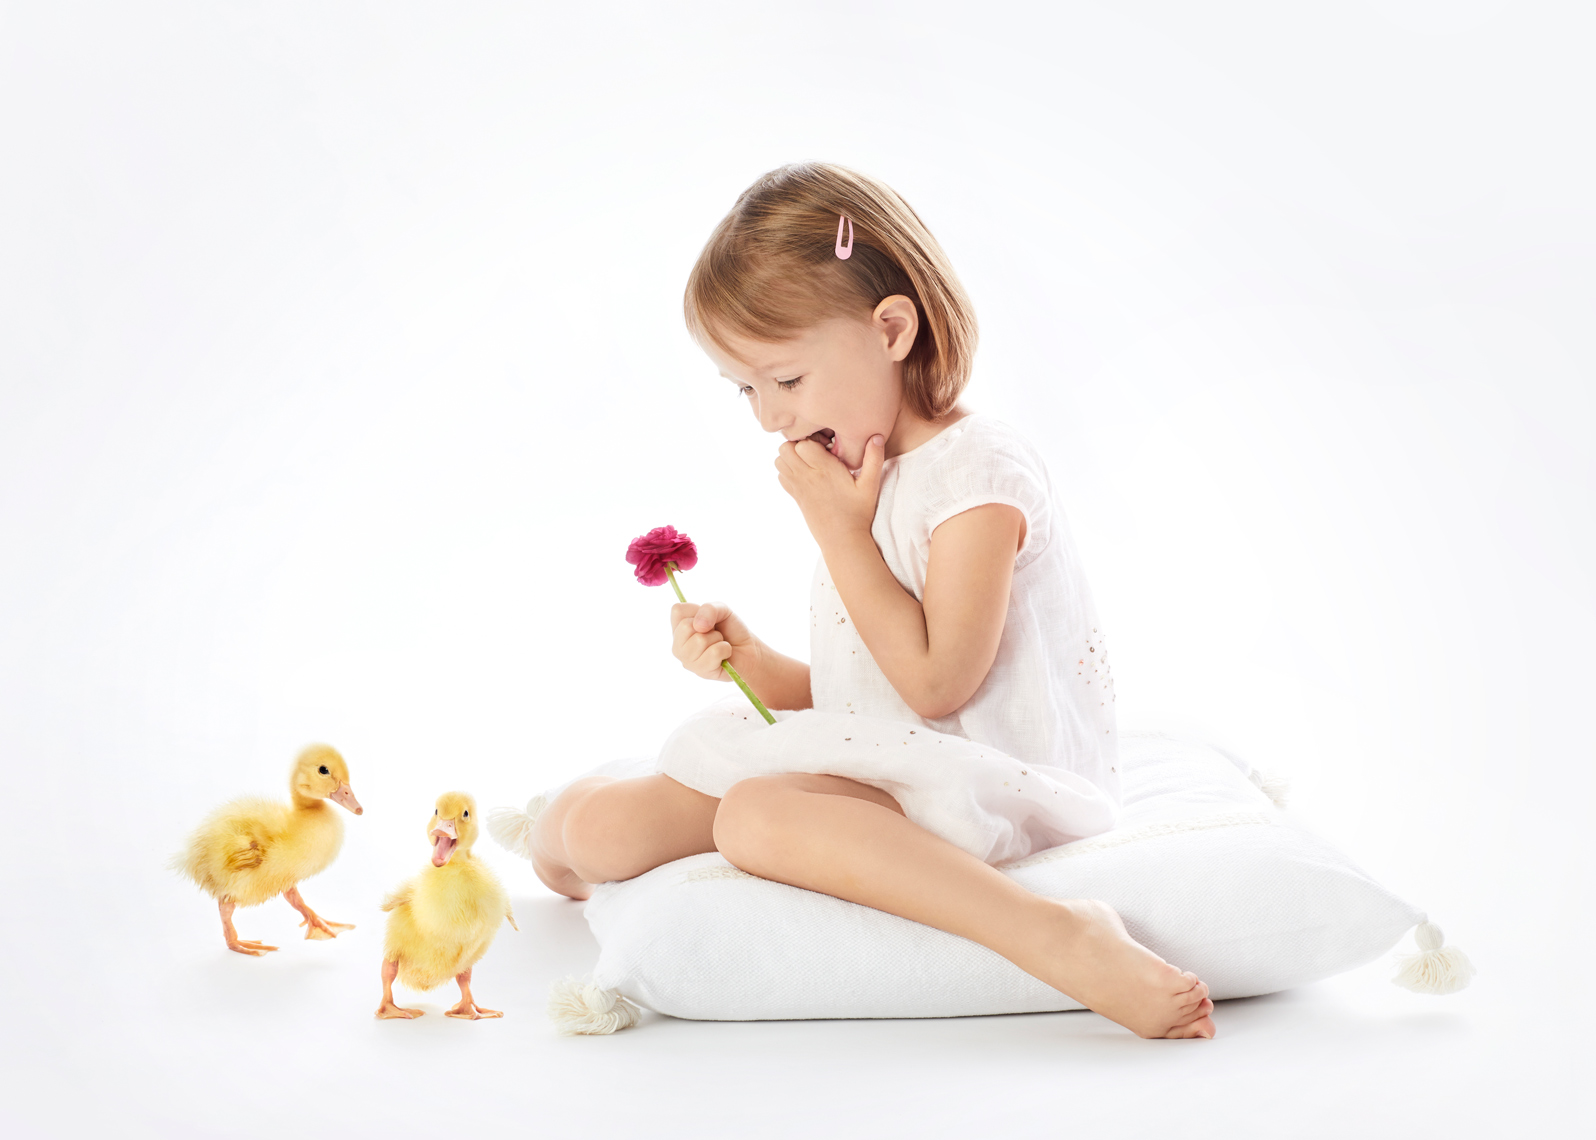 Girl with ducklings and flower